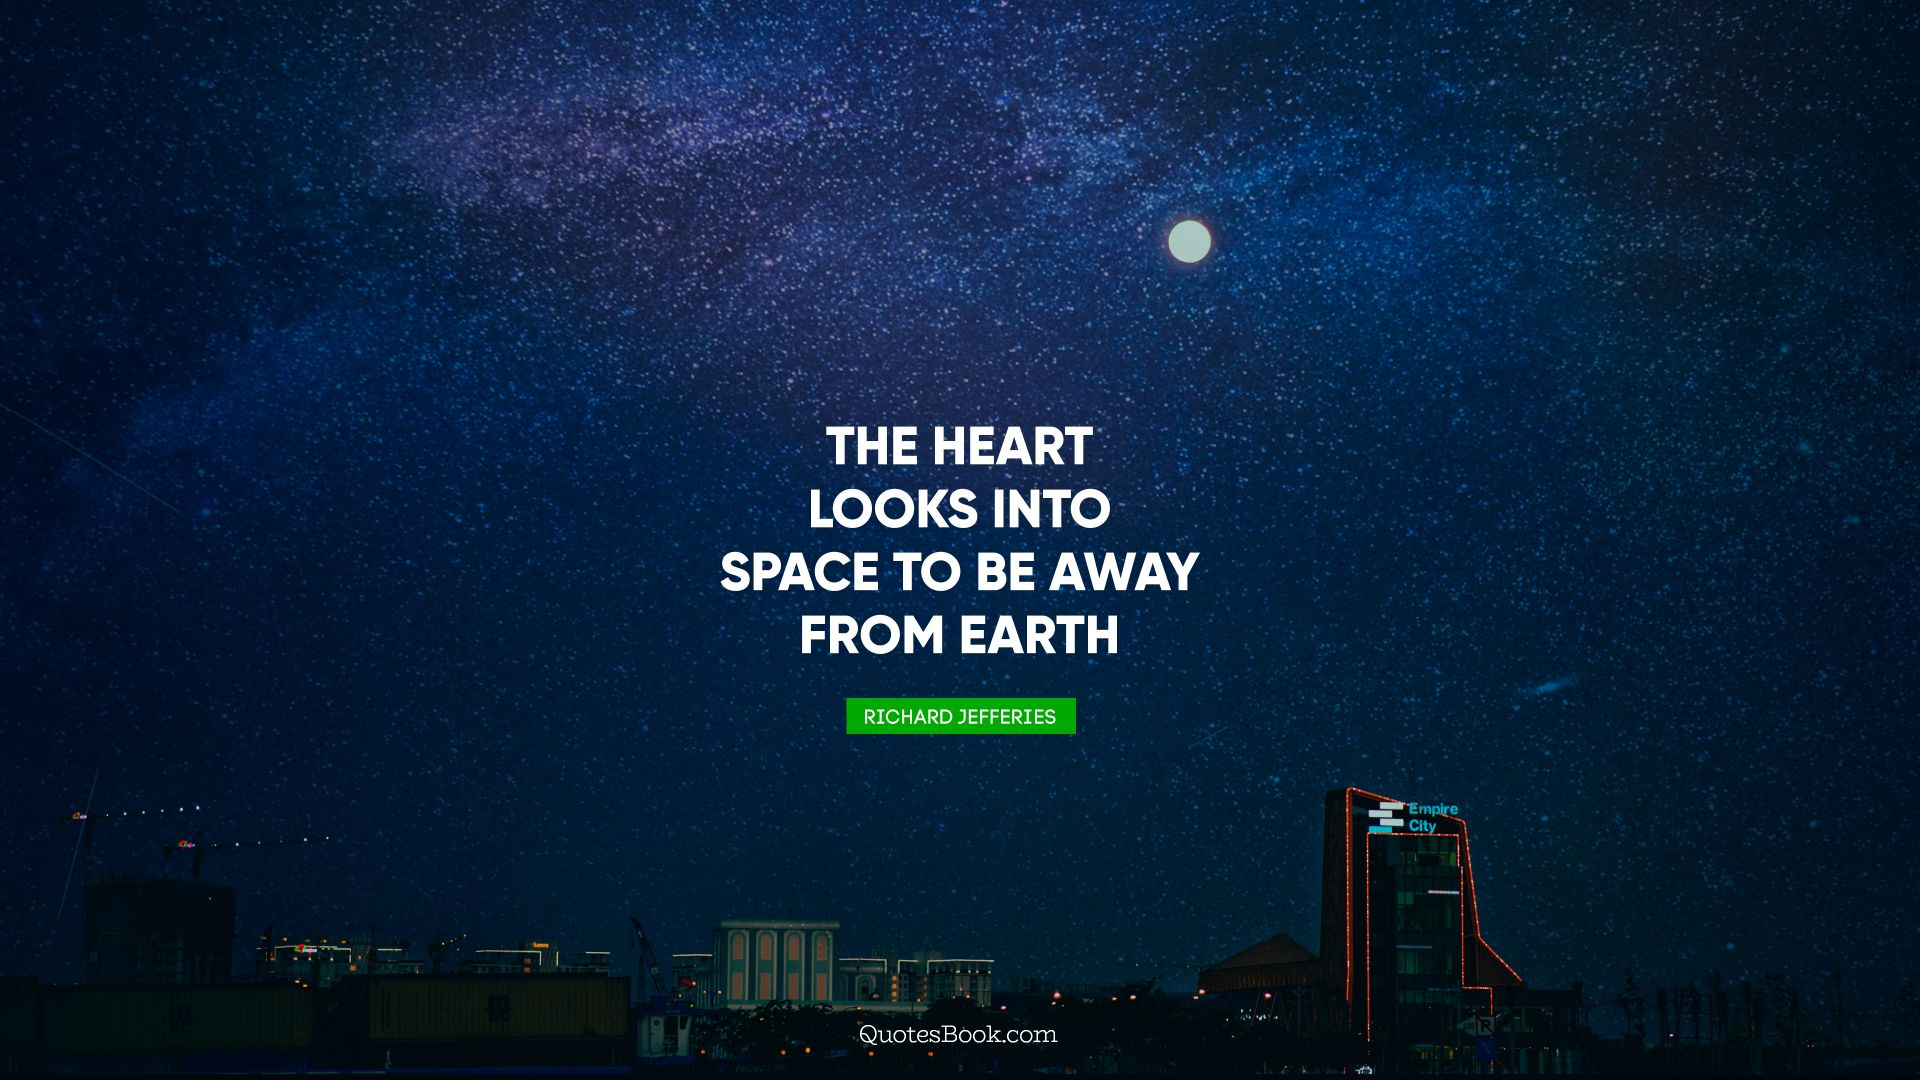 The heart looks into space to be away from earth. - Quote by Richard Jefferies